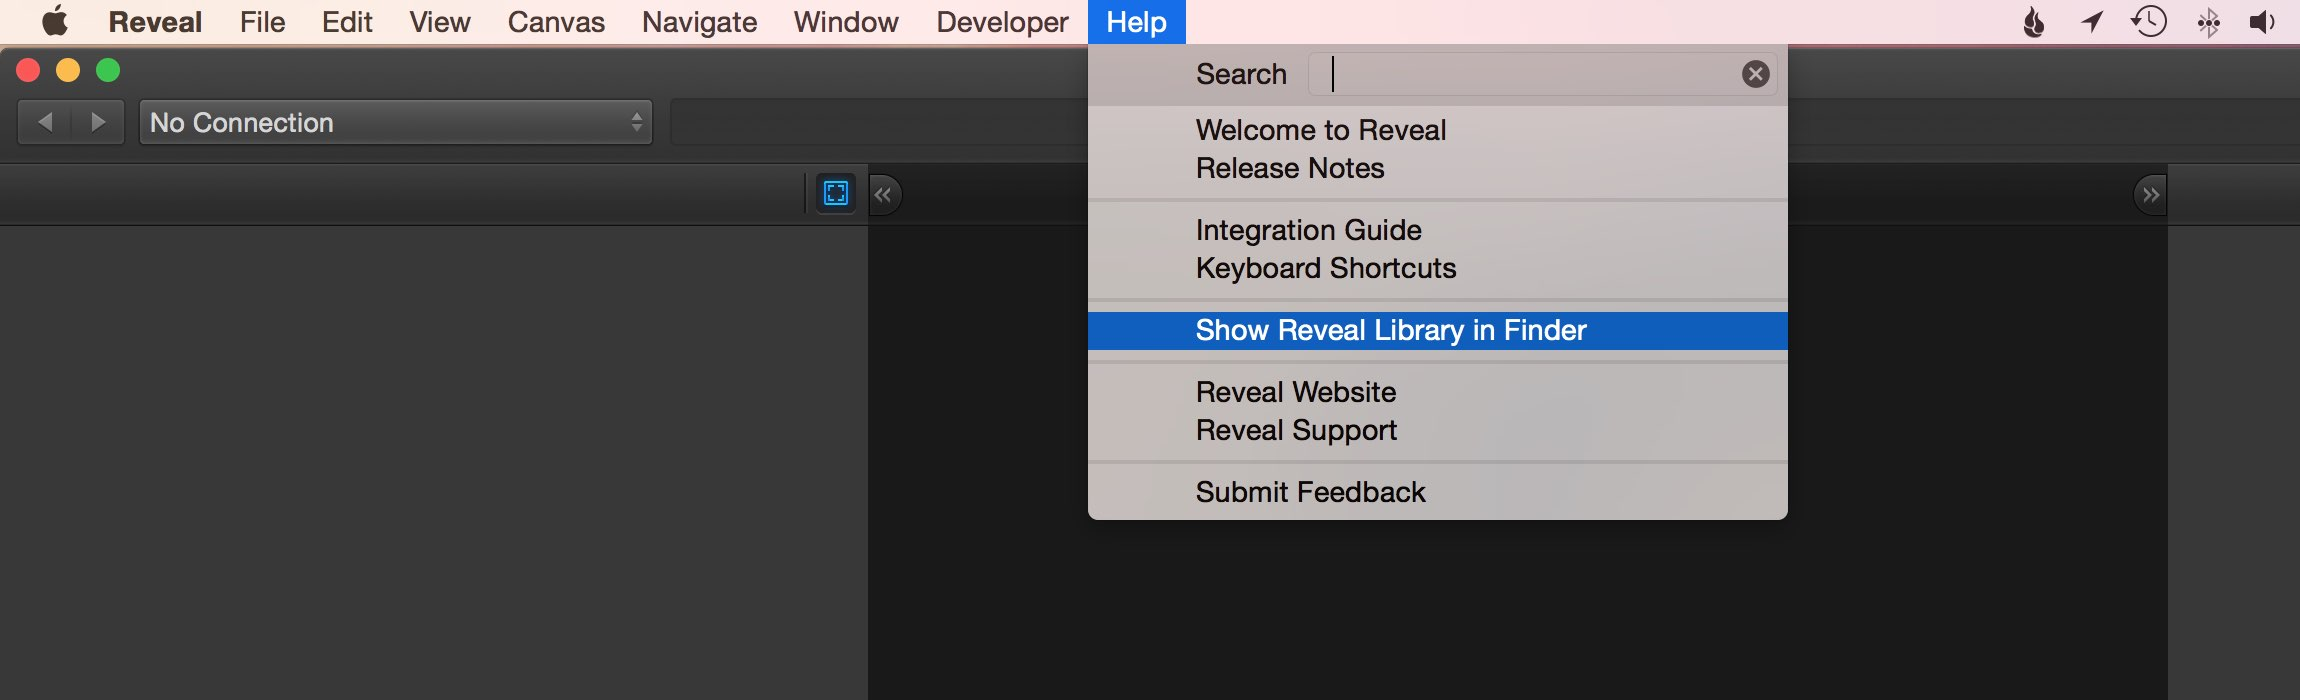 show-reveal-library-in-finder.jpg